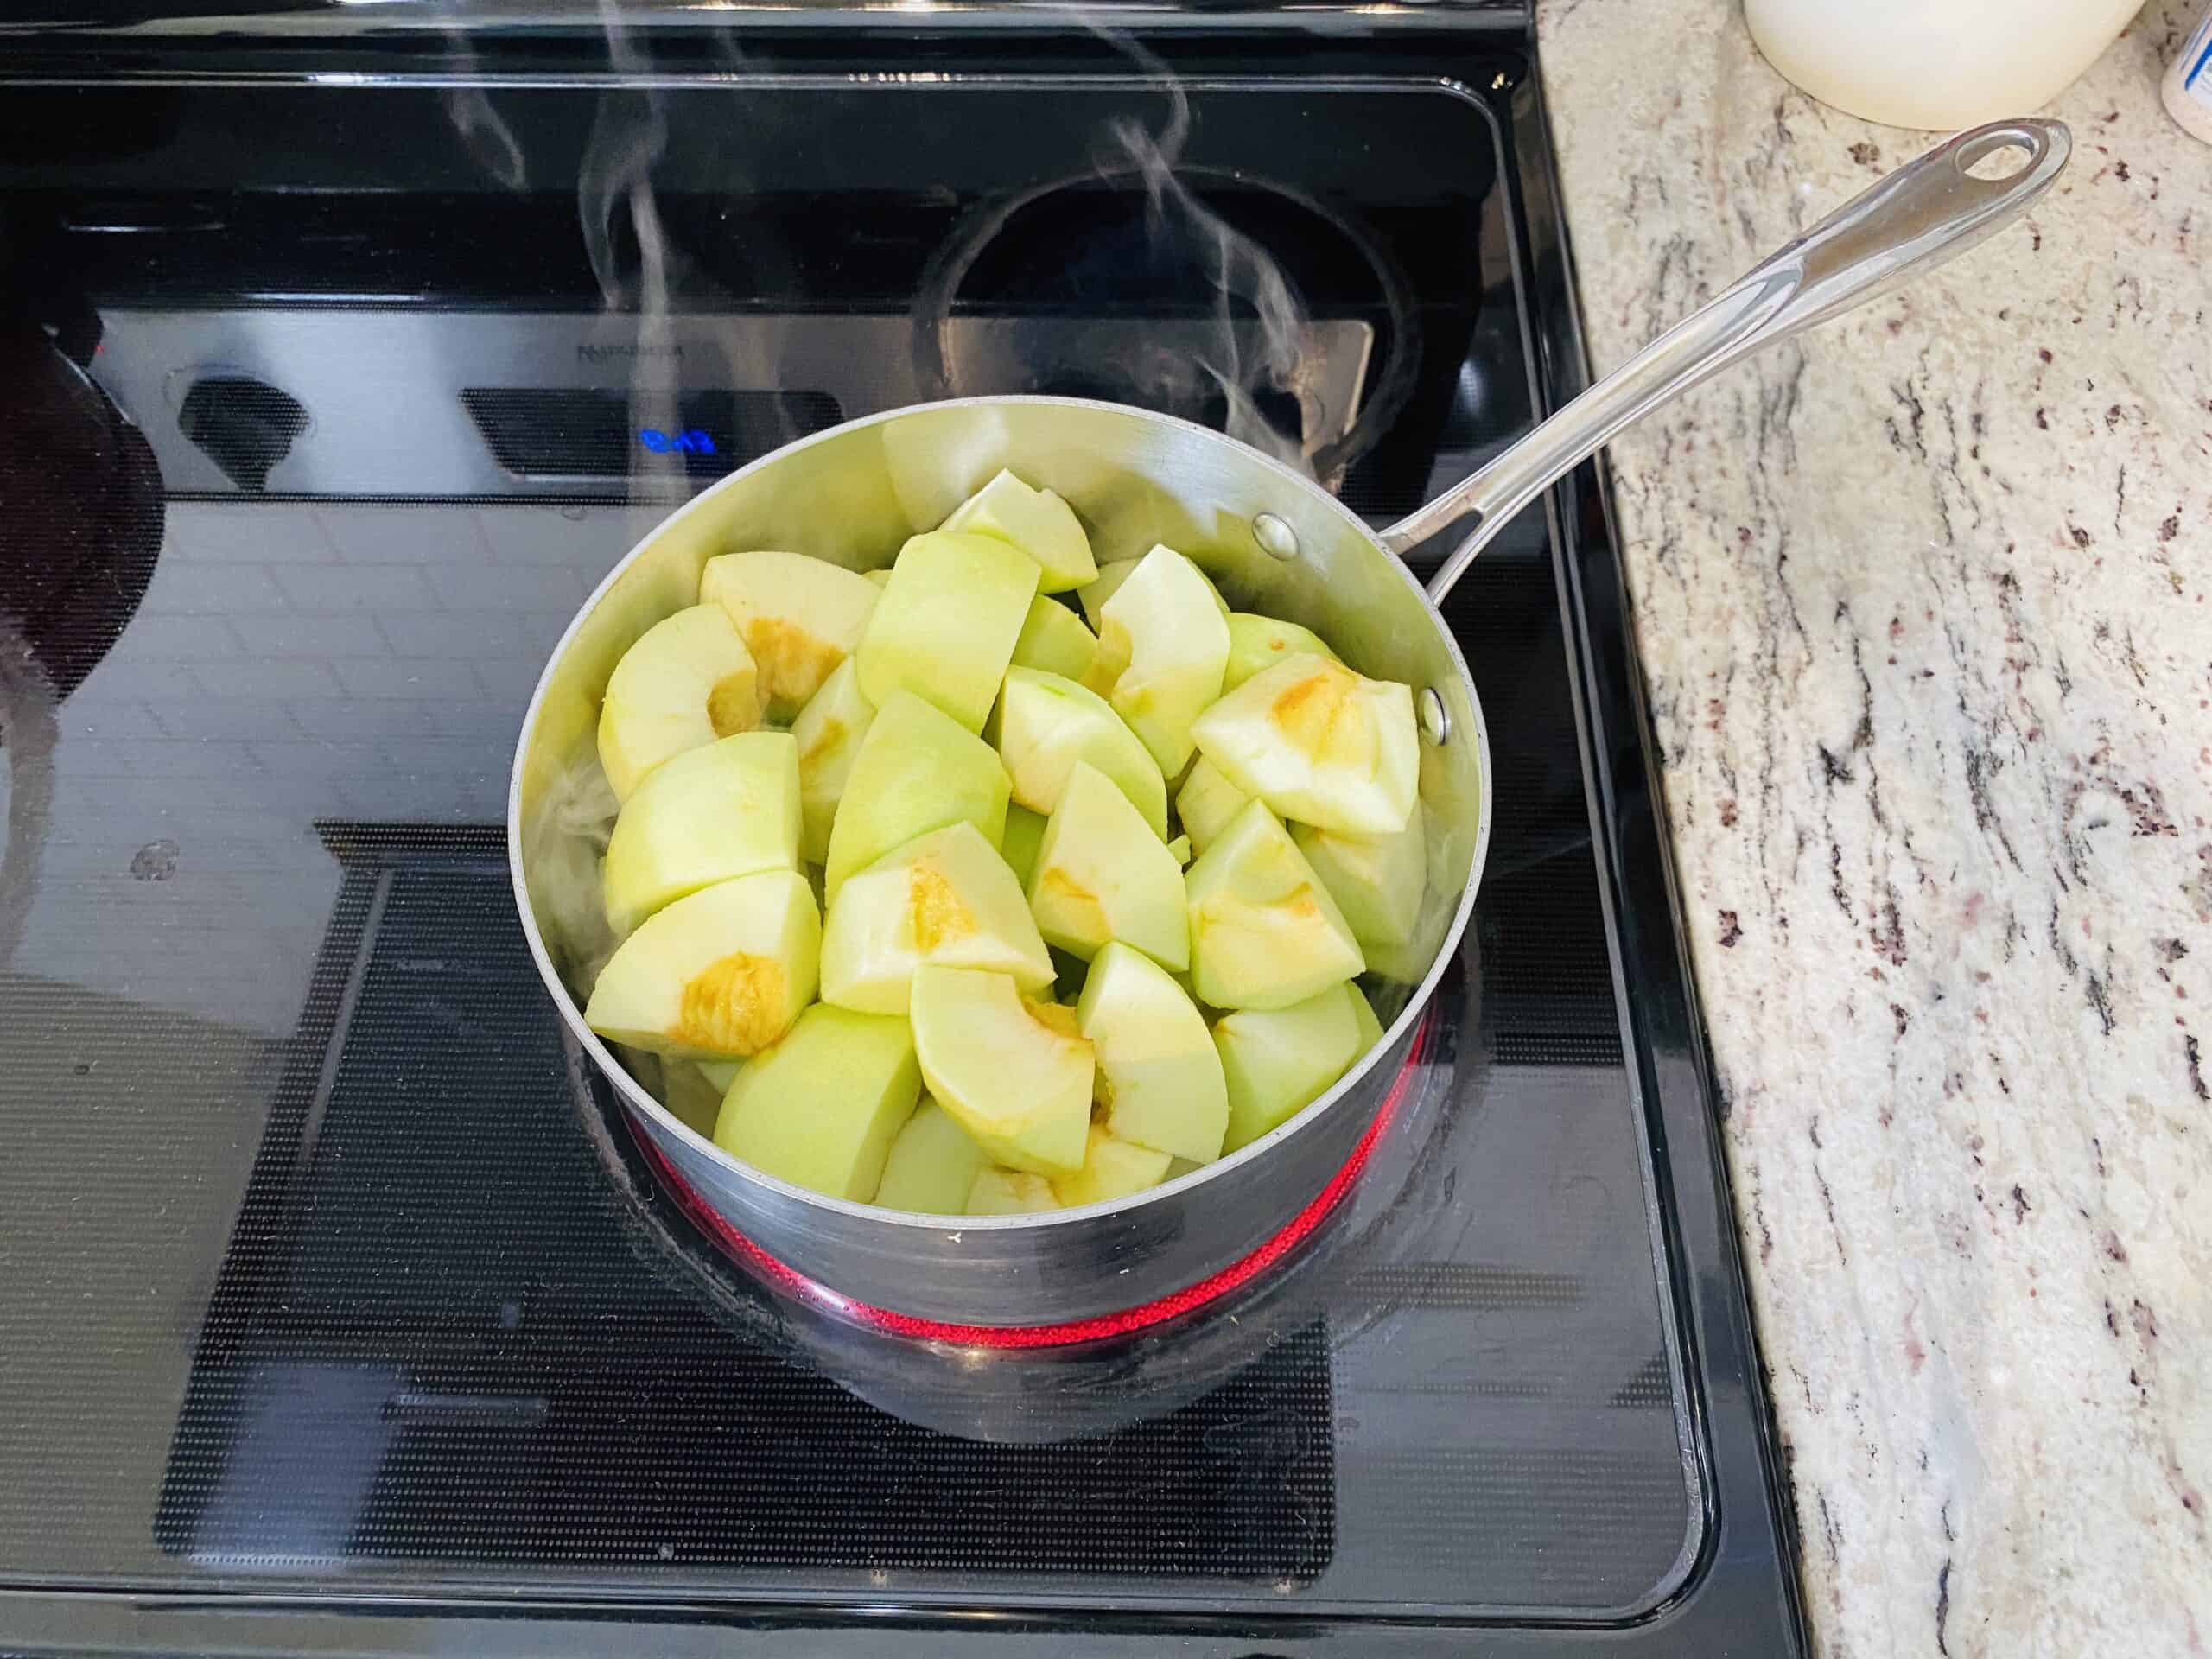 Chopped apples cooking in a saucepan on a black stovetop to make applesauce